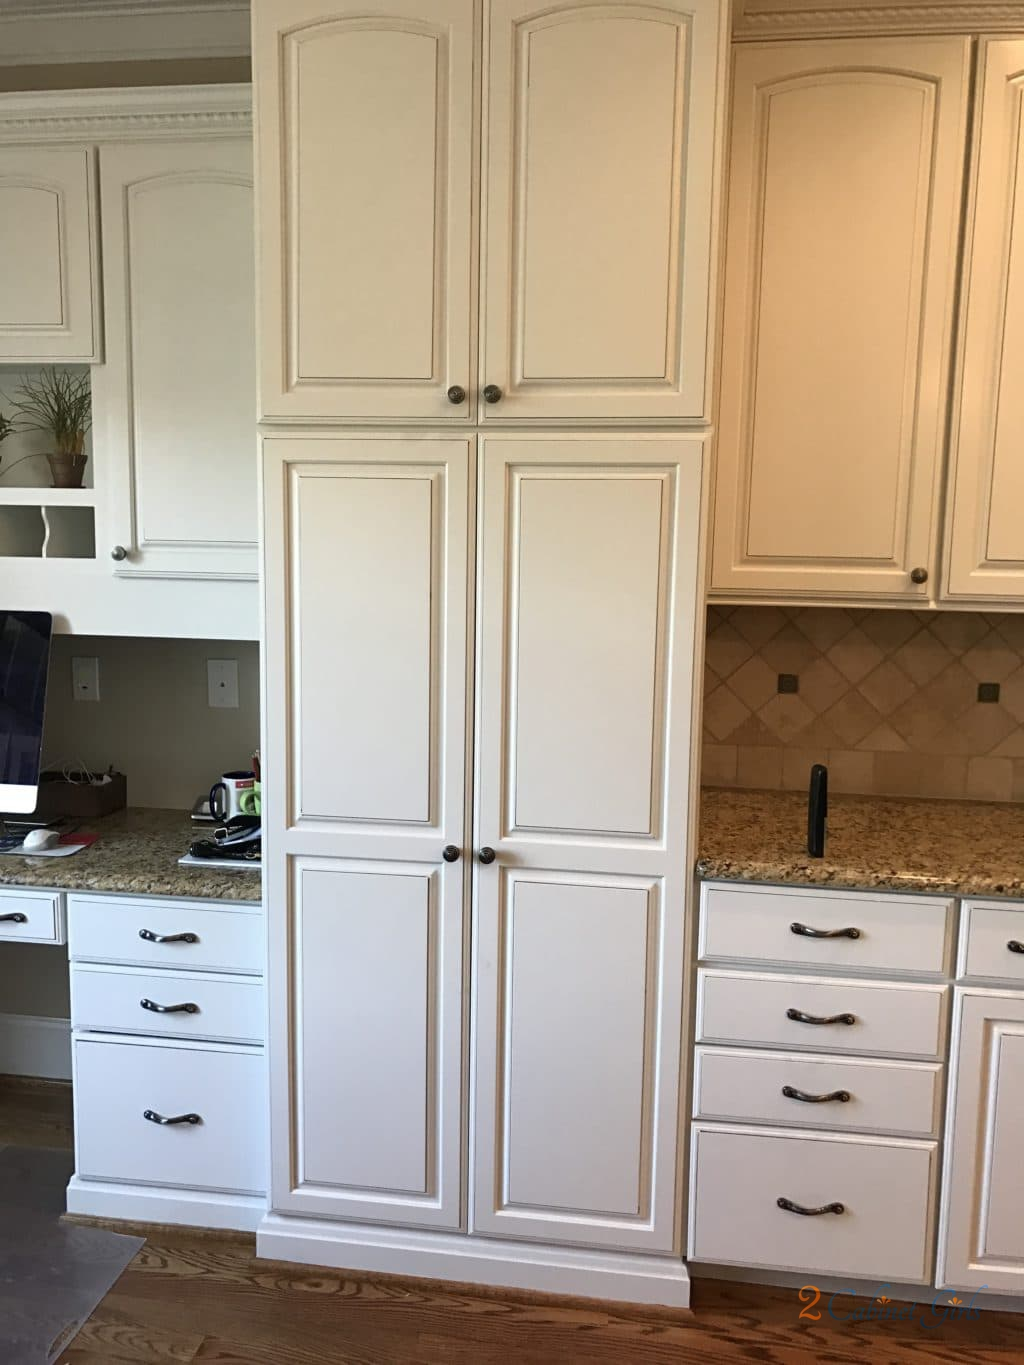 Dove Wing Kitchen w/Wenge Island - 2 Cabinet Girls